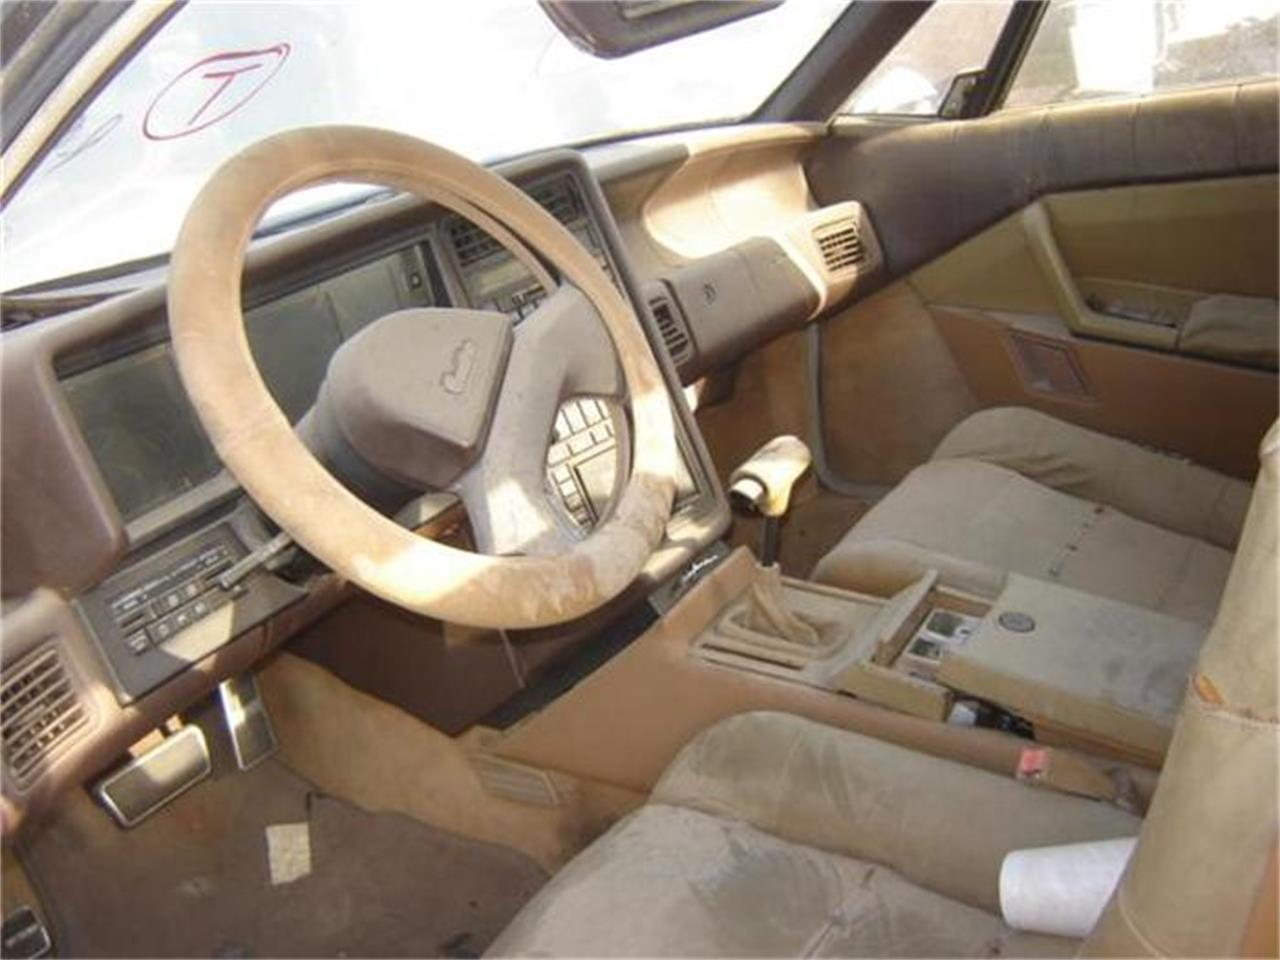 Large Picture of '87 Cadillac Allante located in Phoenix Arizona - $3,500.00 - 8IF7